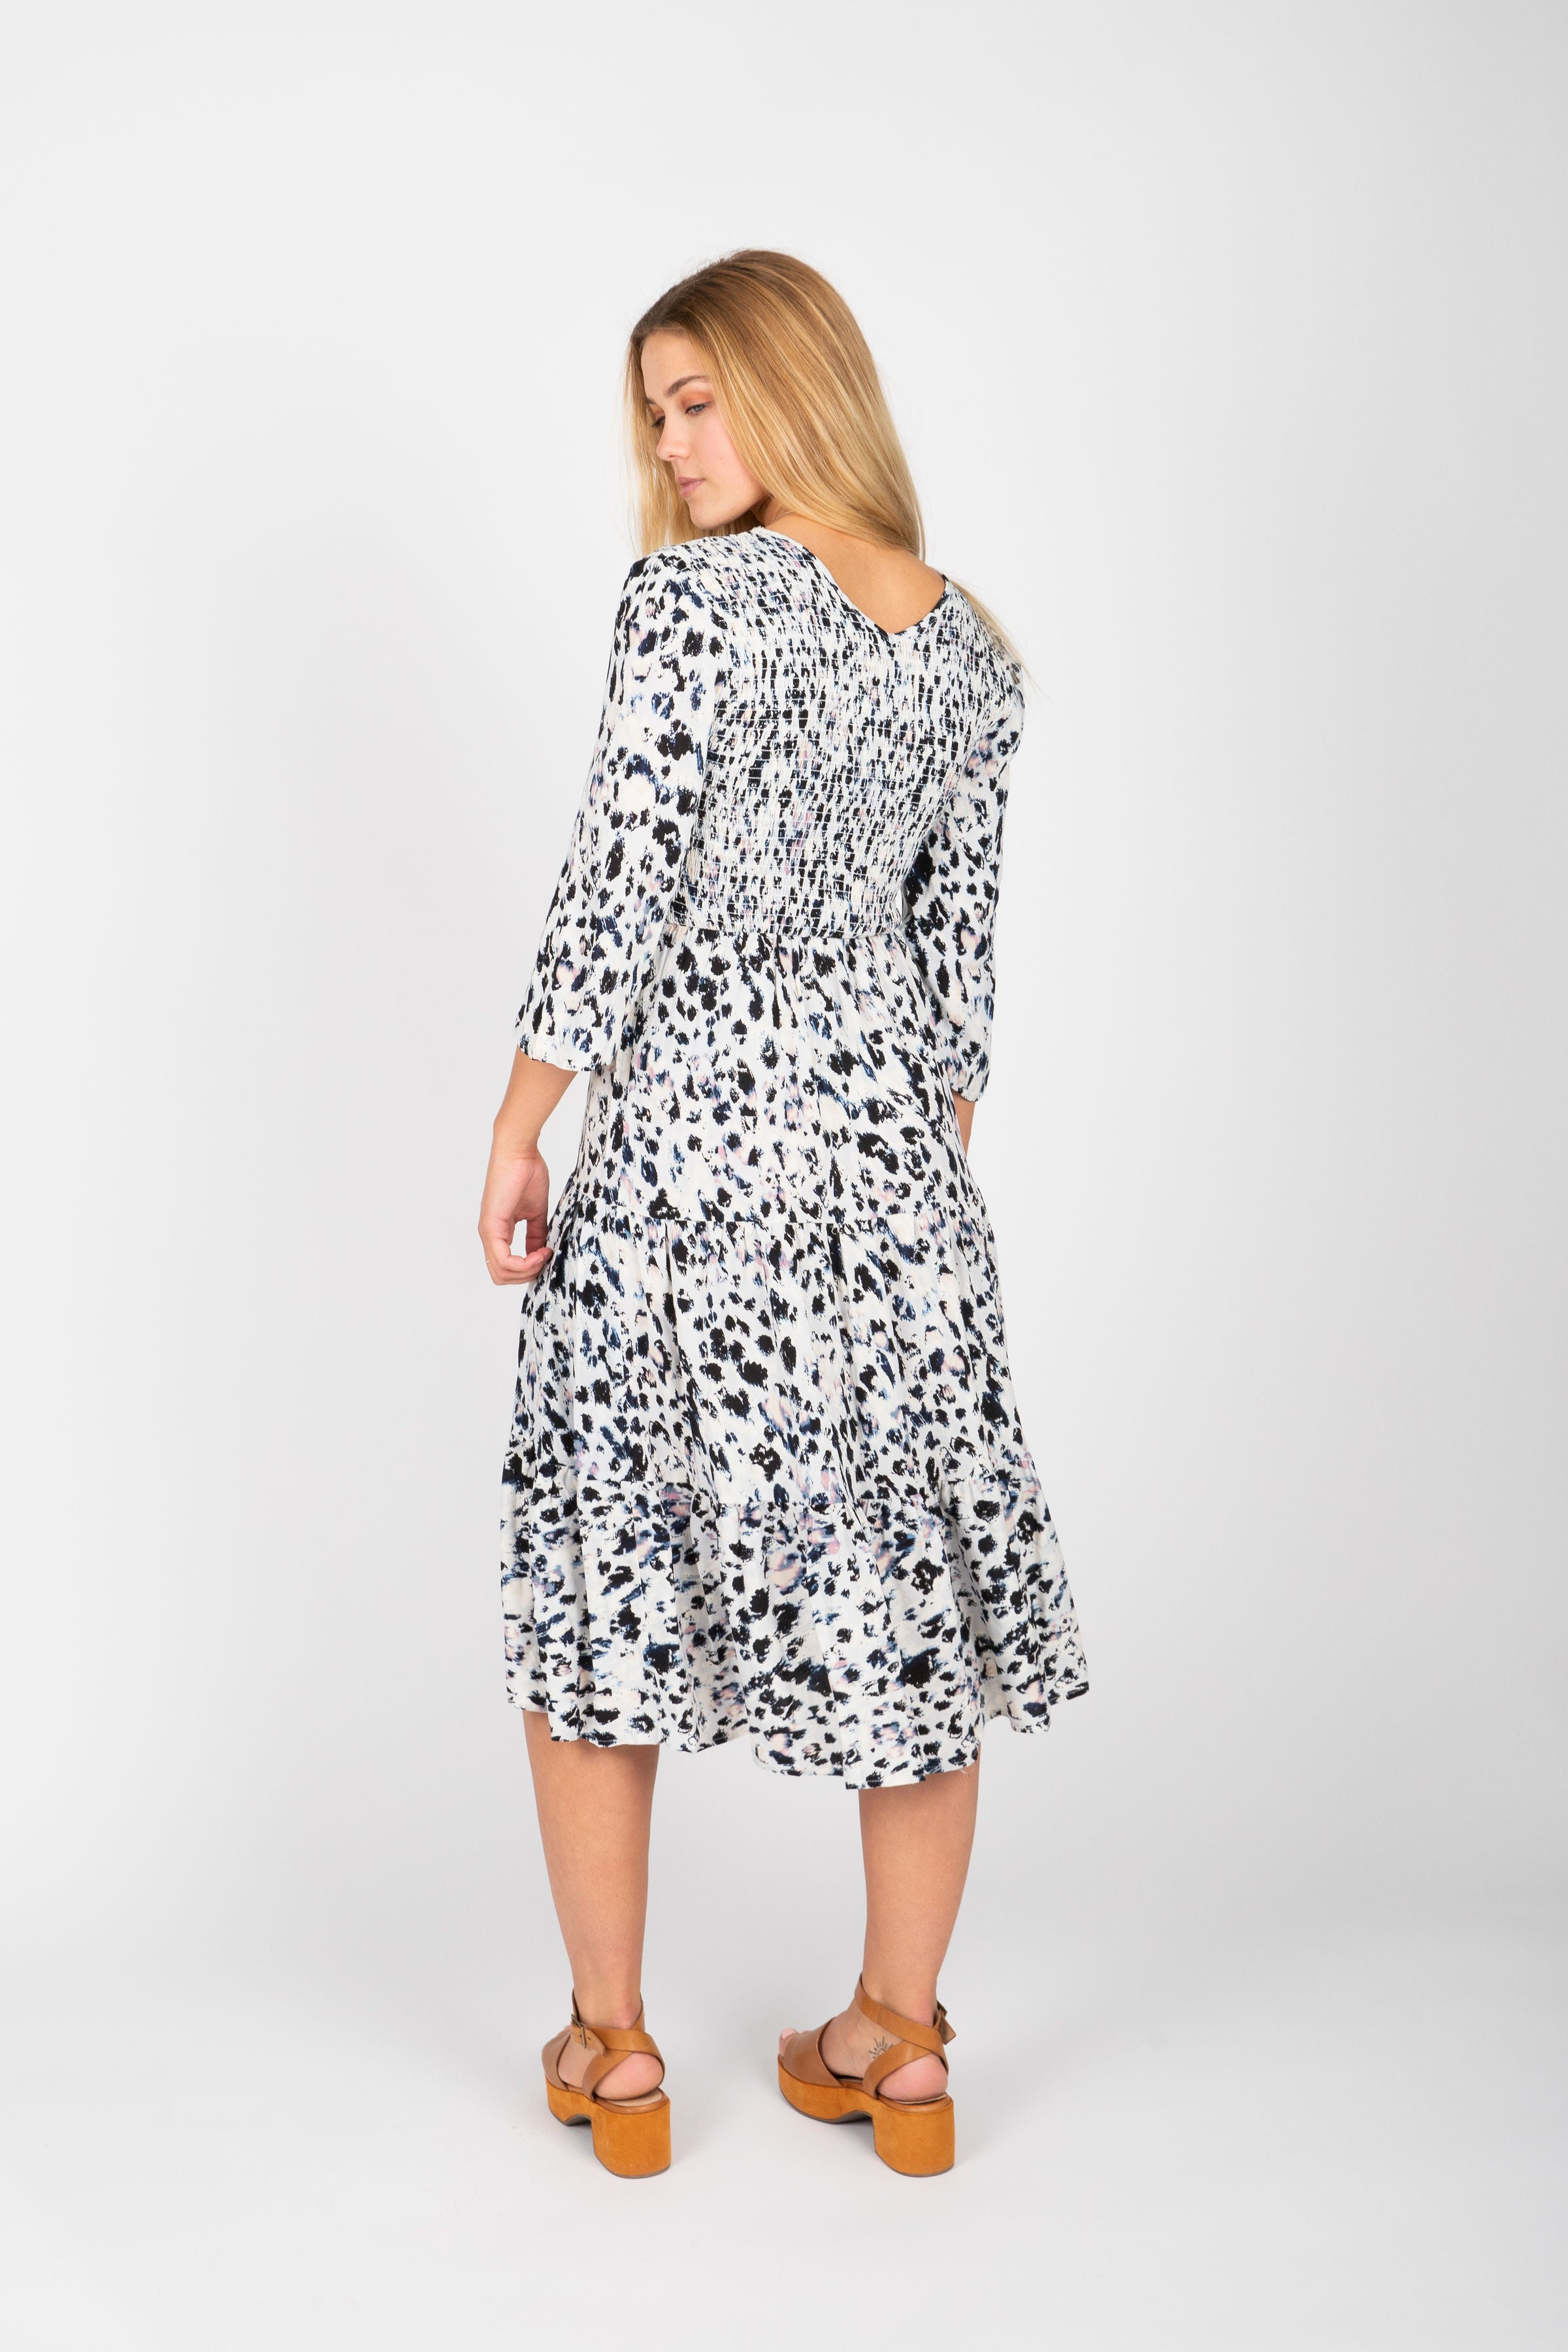 The Amorous Leopard Dress in White